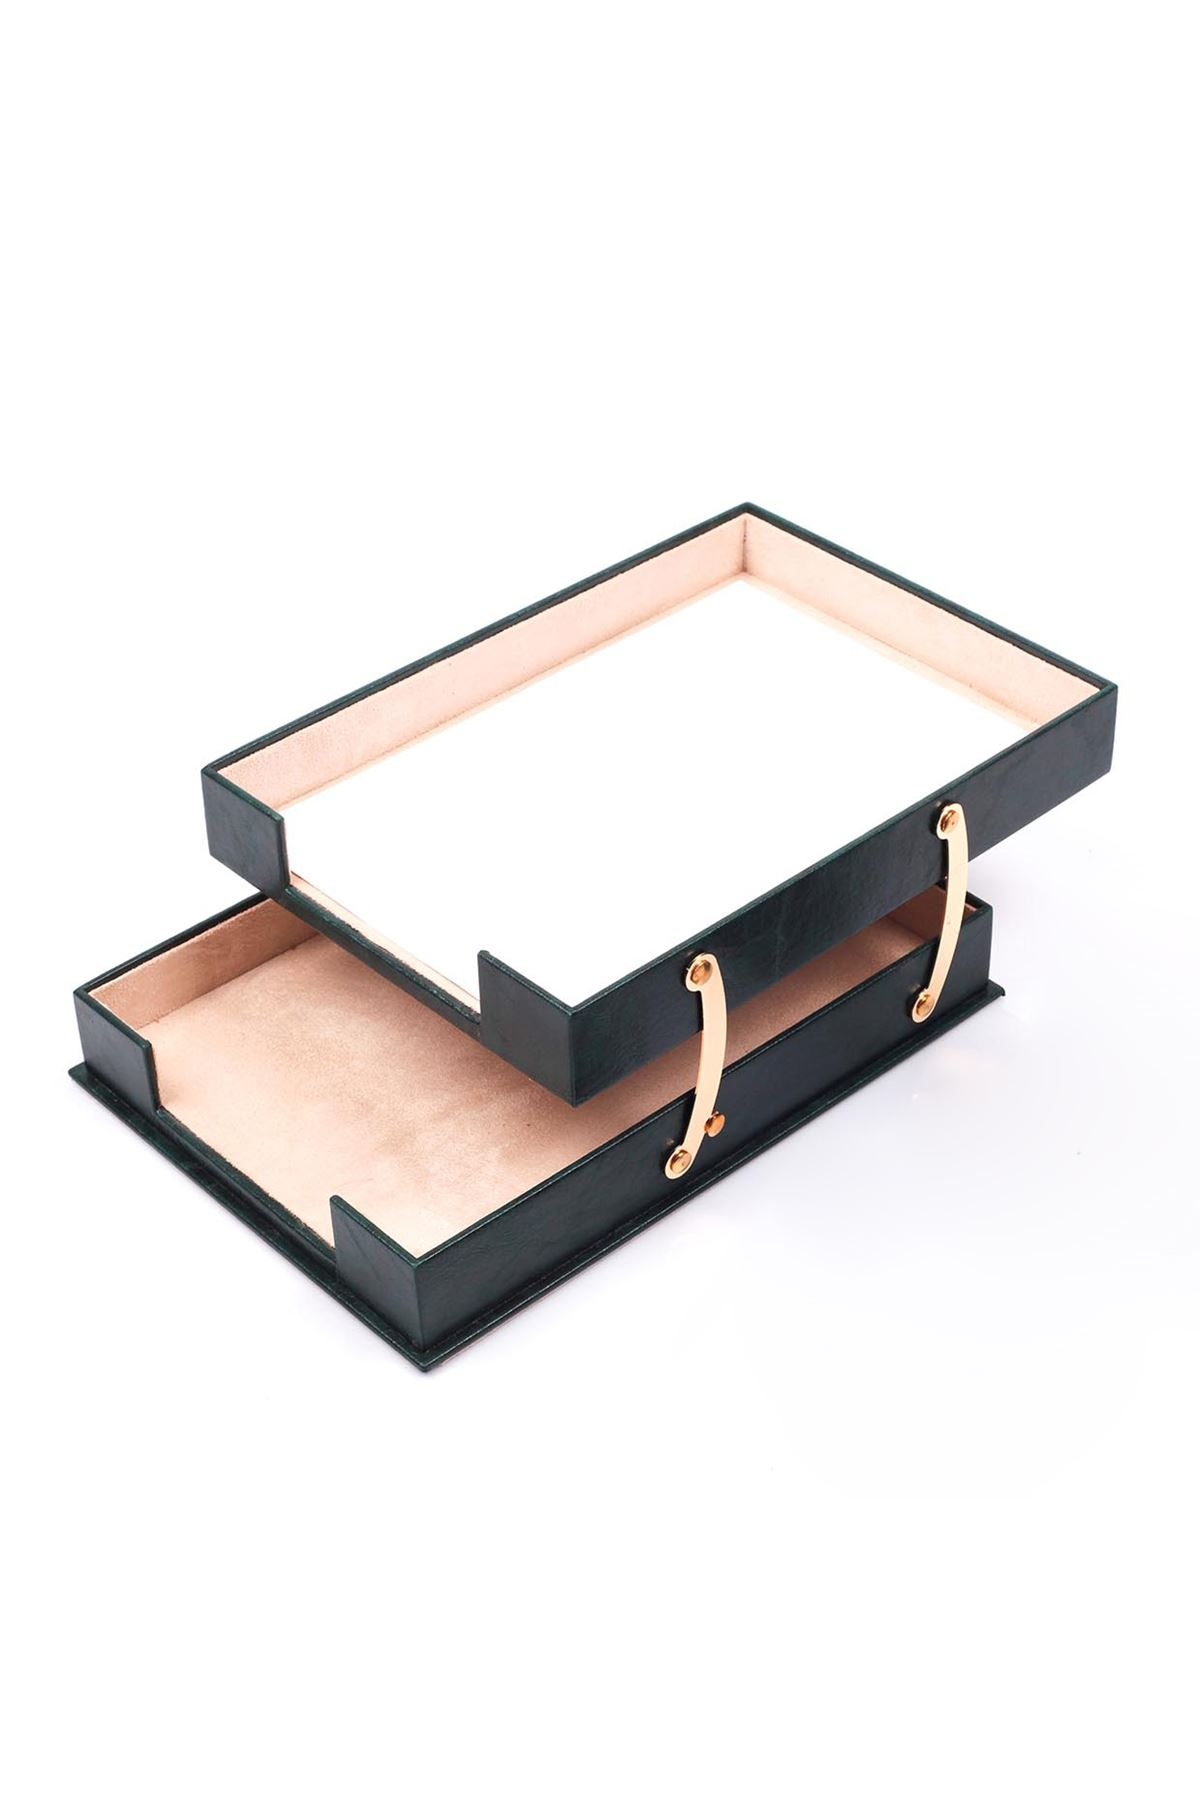 Double Document Tray Green| Leather Document Organizer | Leather Foldable Tray | Leather Organizer | Double Document Shelves